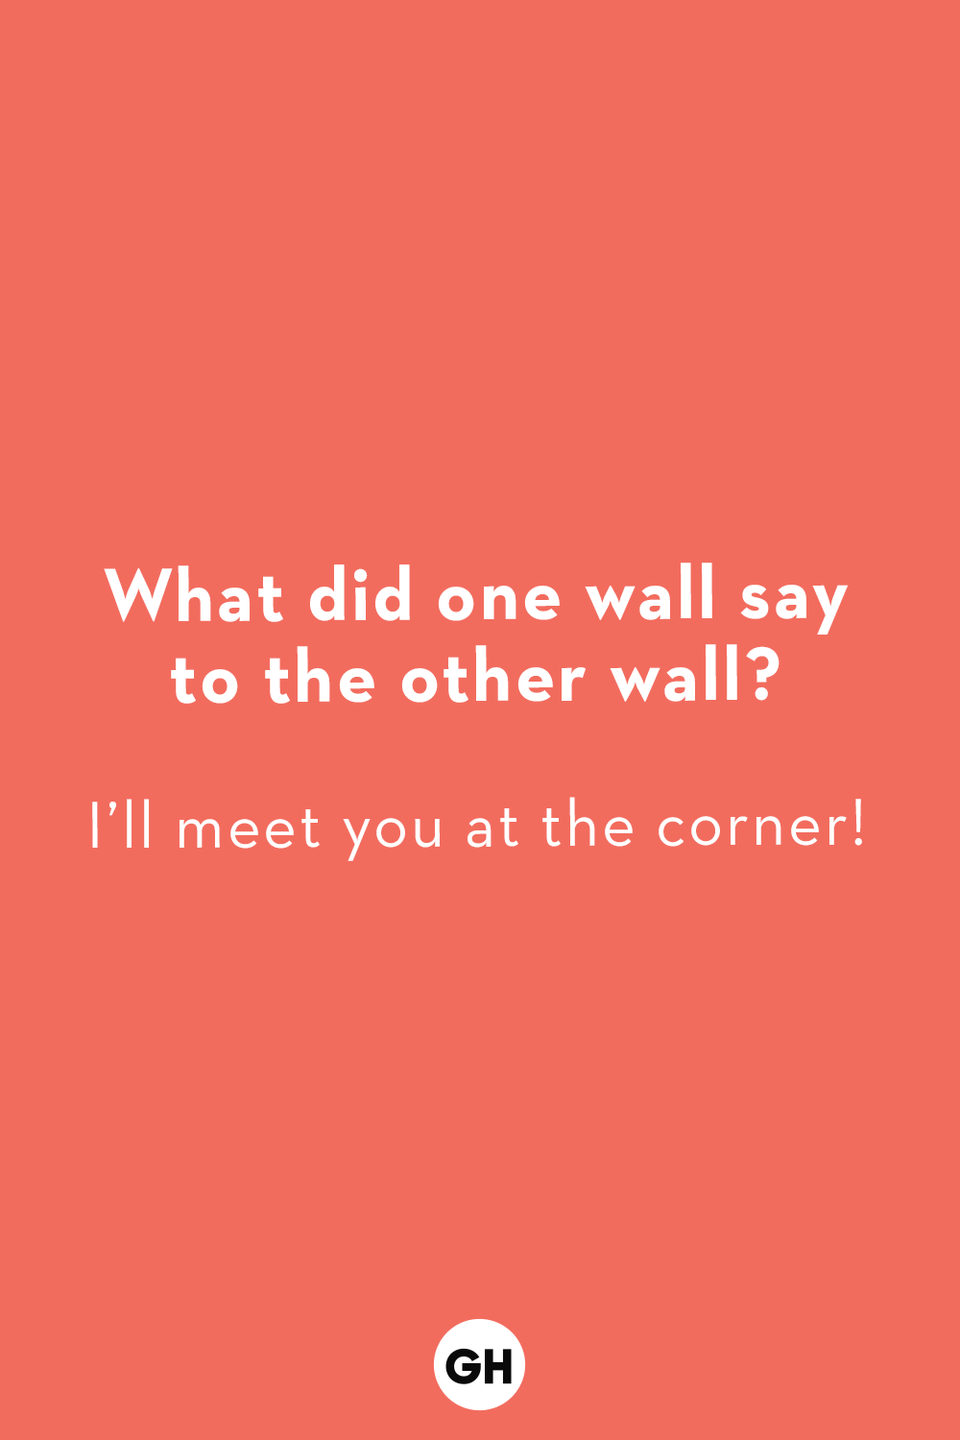 """<p>I'll meet you at the corner!</p><p><strong>RELATED:</strong> <a href=""""https://www.goodhousekeeping.com/life/parenting/a36279135/best-corny-dad-jokes-for-kids/"""" rel=""""nofollow noopener"""" target=""""_blank"""" data-ylk=""""slk:The Best Dad Jokes for Kids With Cheesy Parents"""" class=""""link rapid-noclick-resp"""">The Best Dad Jokes for Kids With Cheesy Parents</a></p>"""